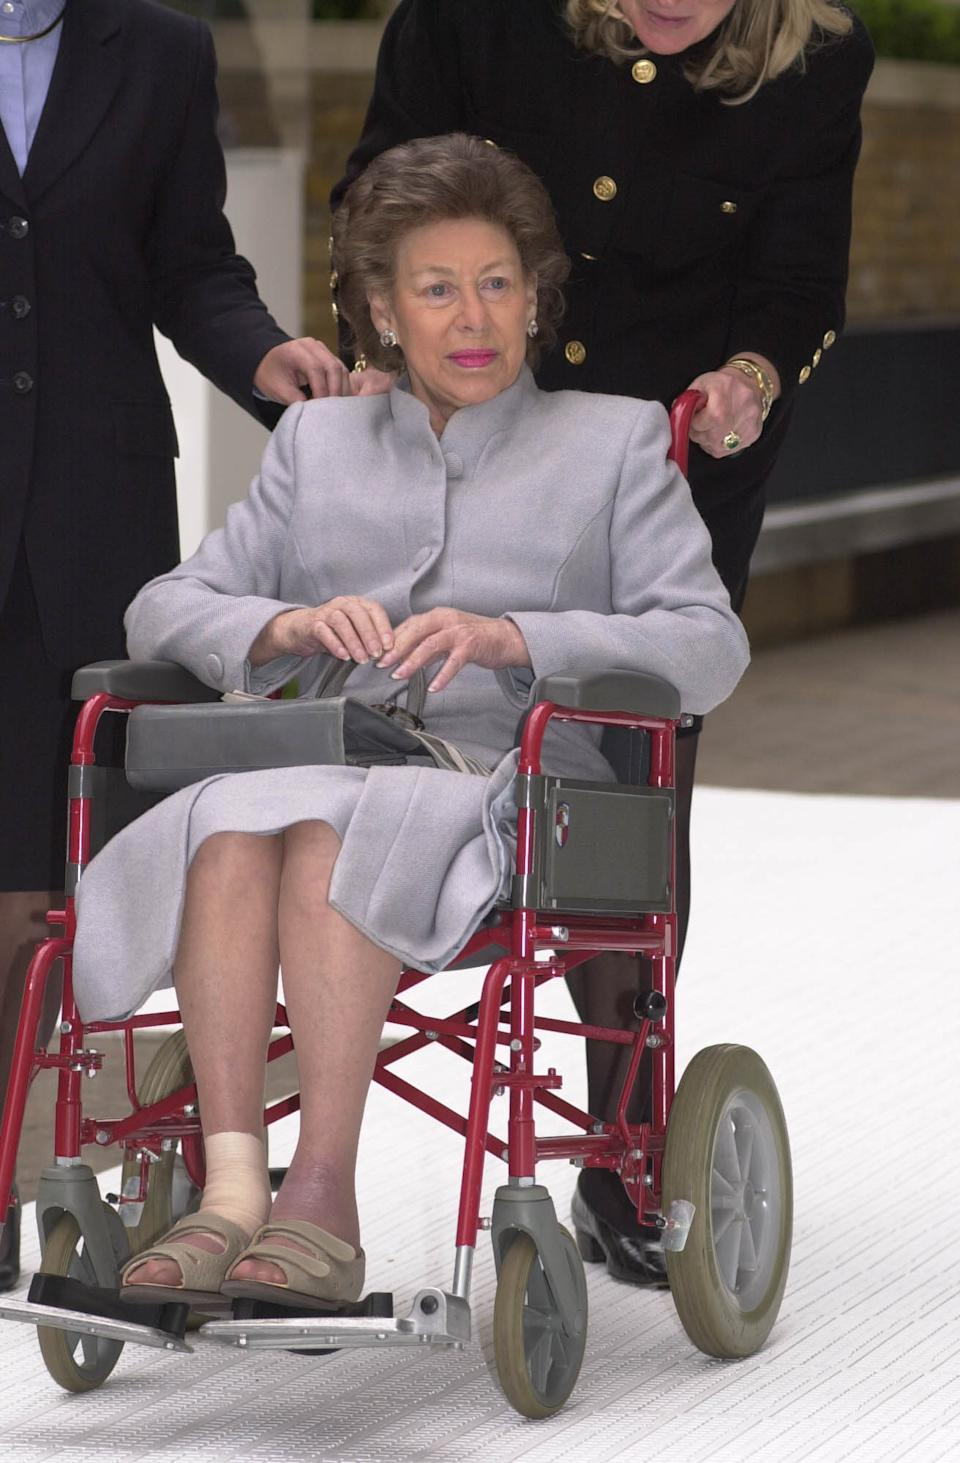 Princess Margaret making a rare public appearance, in her wheelchair, for part of her visit to the Chelsea Harbour Design Centre, London. The Princess badly burnt her feet while on the Caribbean island of Mustique in 1999.   (Photo by John Stillwell - PA Images/PA Images via Getty Images)